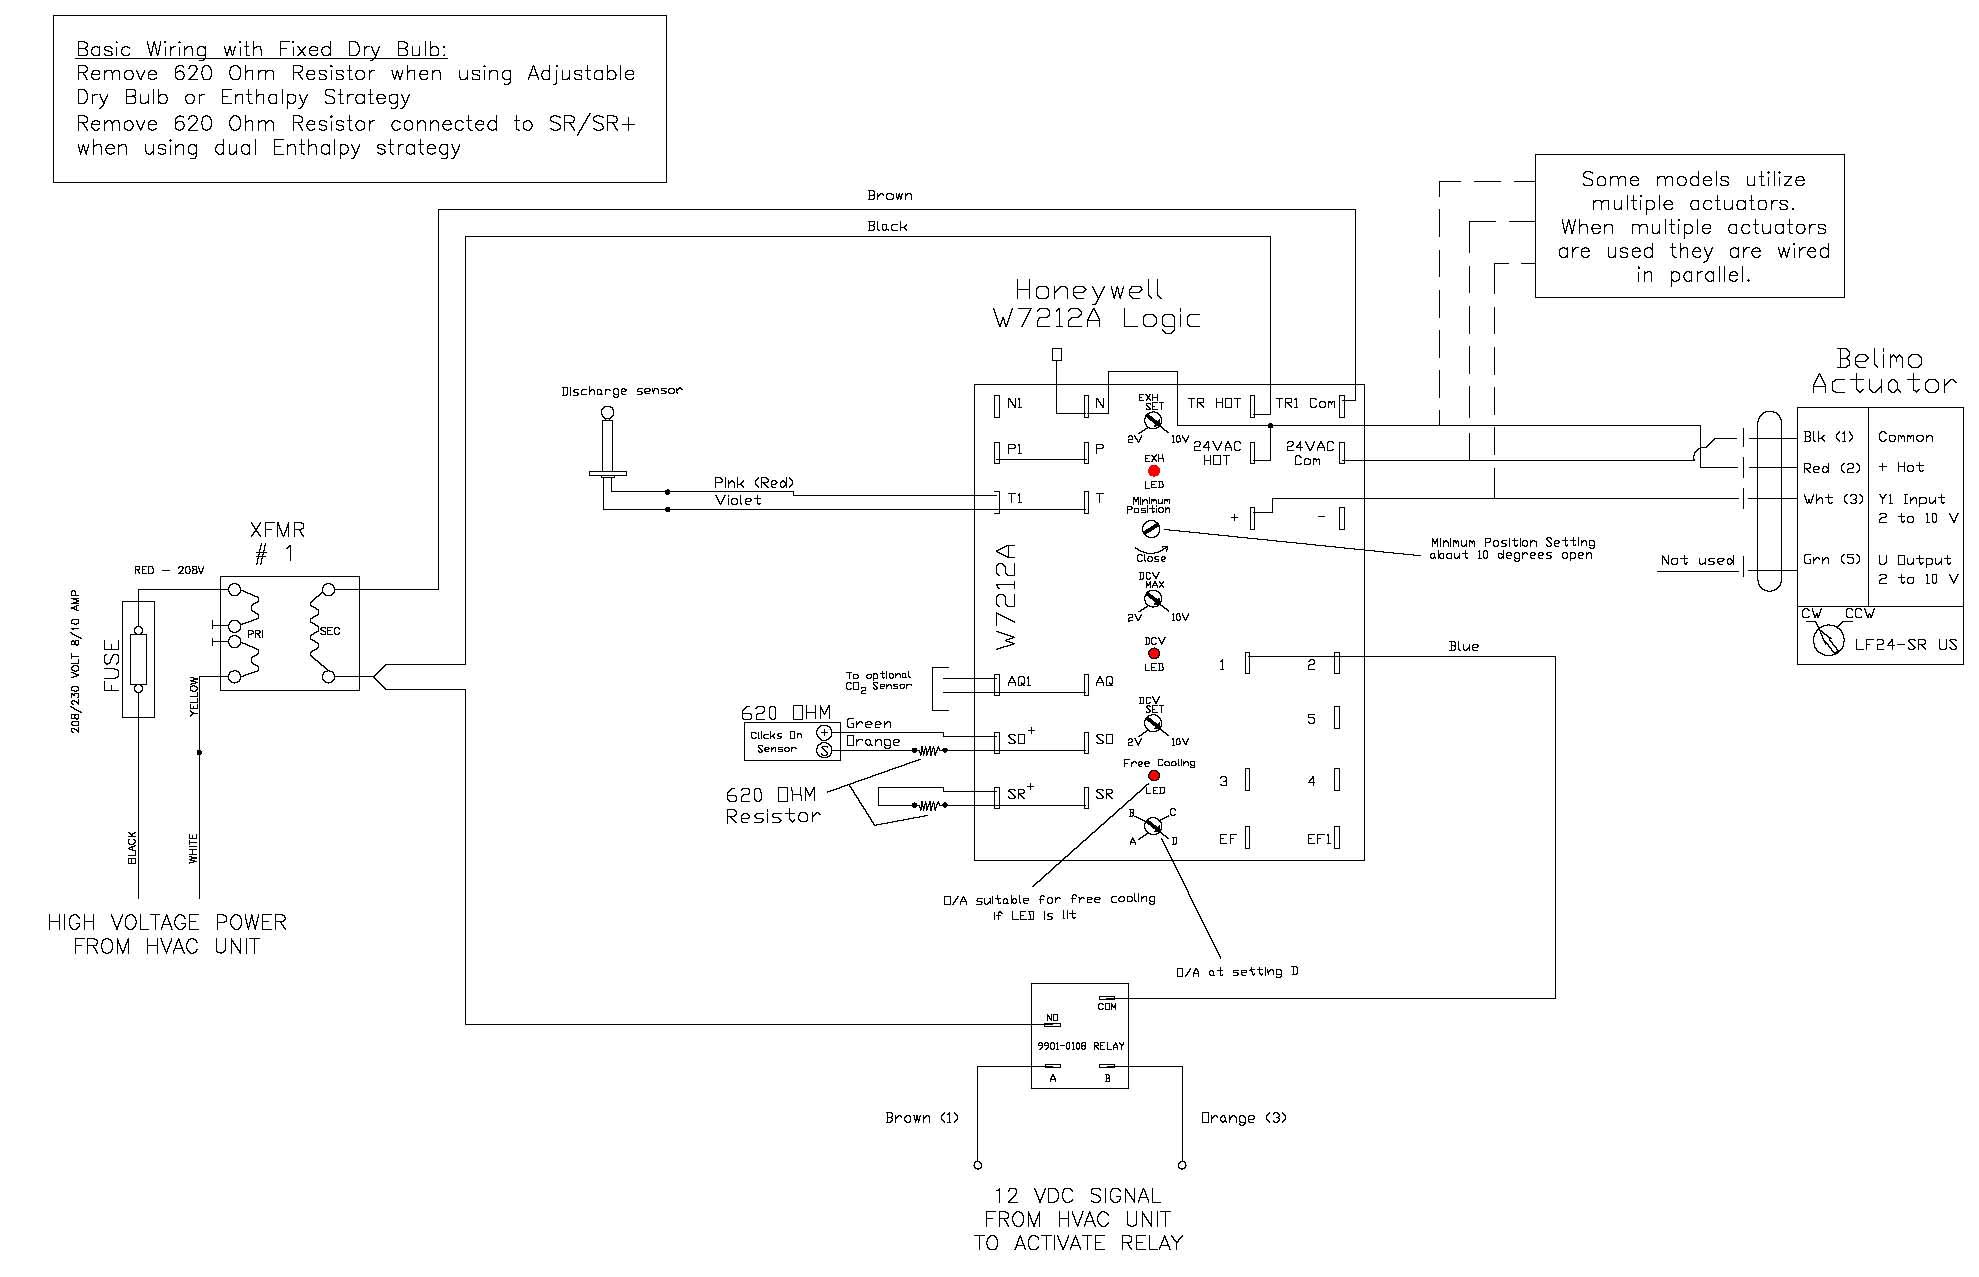 York Schematics Y14 Guide And Troubleshooting Of Wiring Diagram Millennium Images Gallery